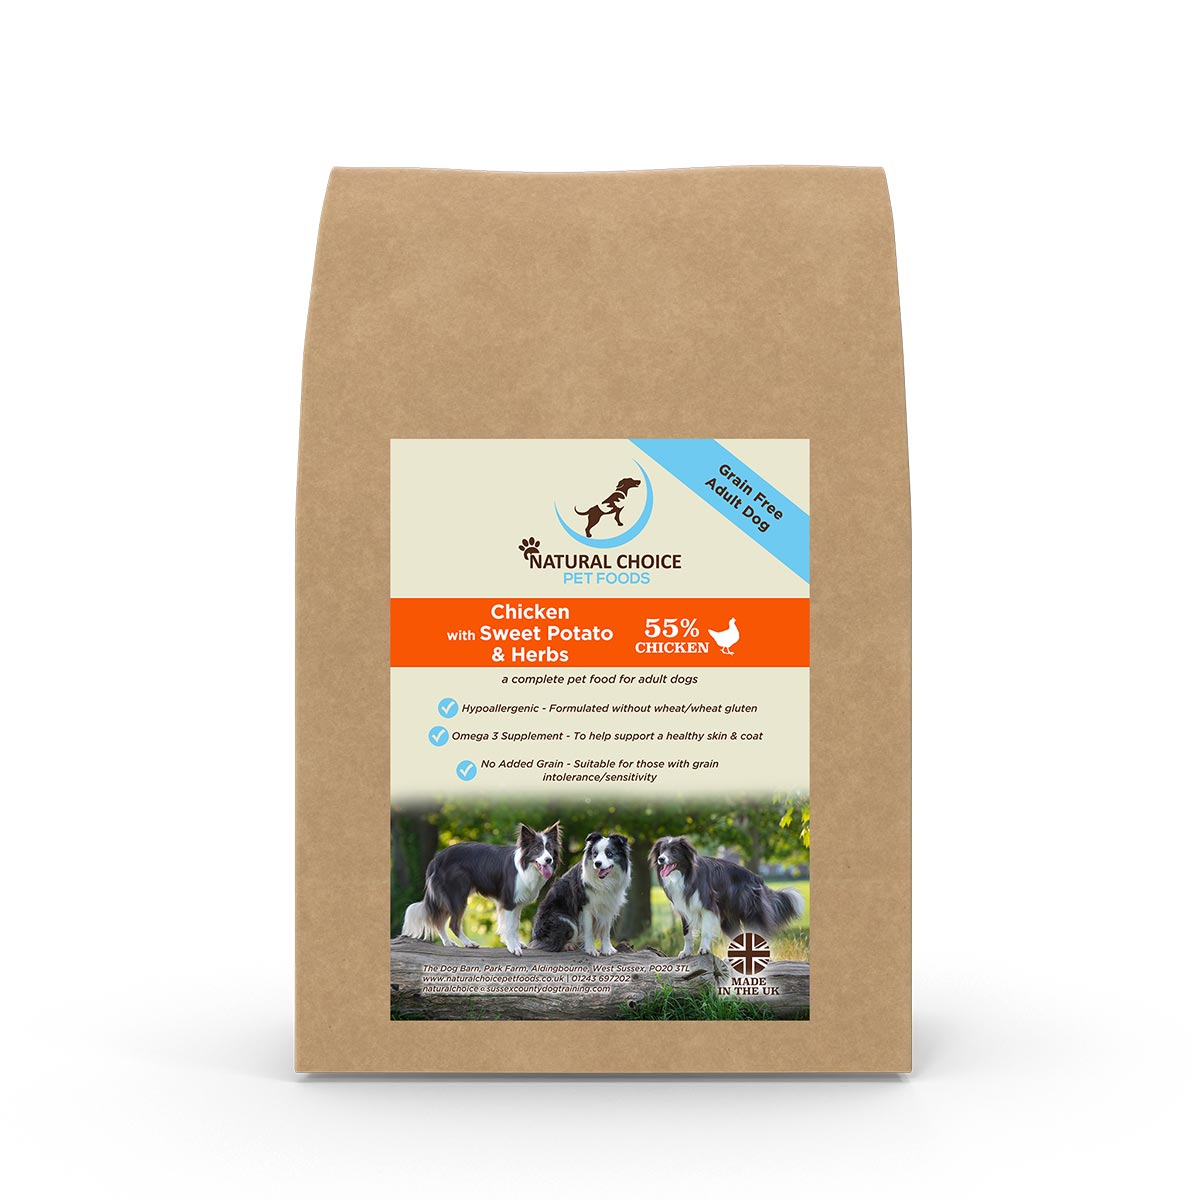 Natural Choice - Chicken, Sweet Potato & Herbs - Grain Free Dry Dog Food